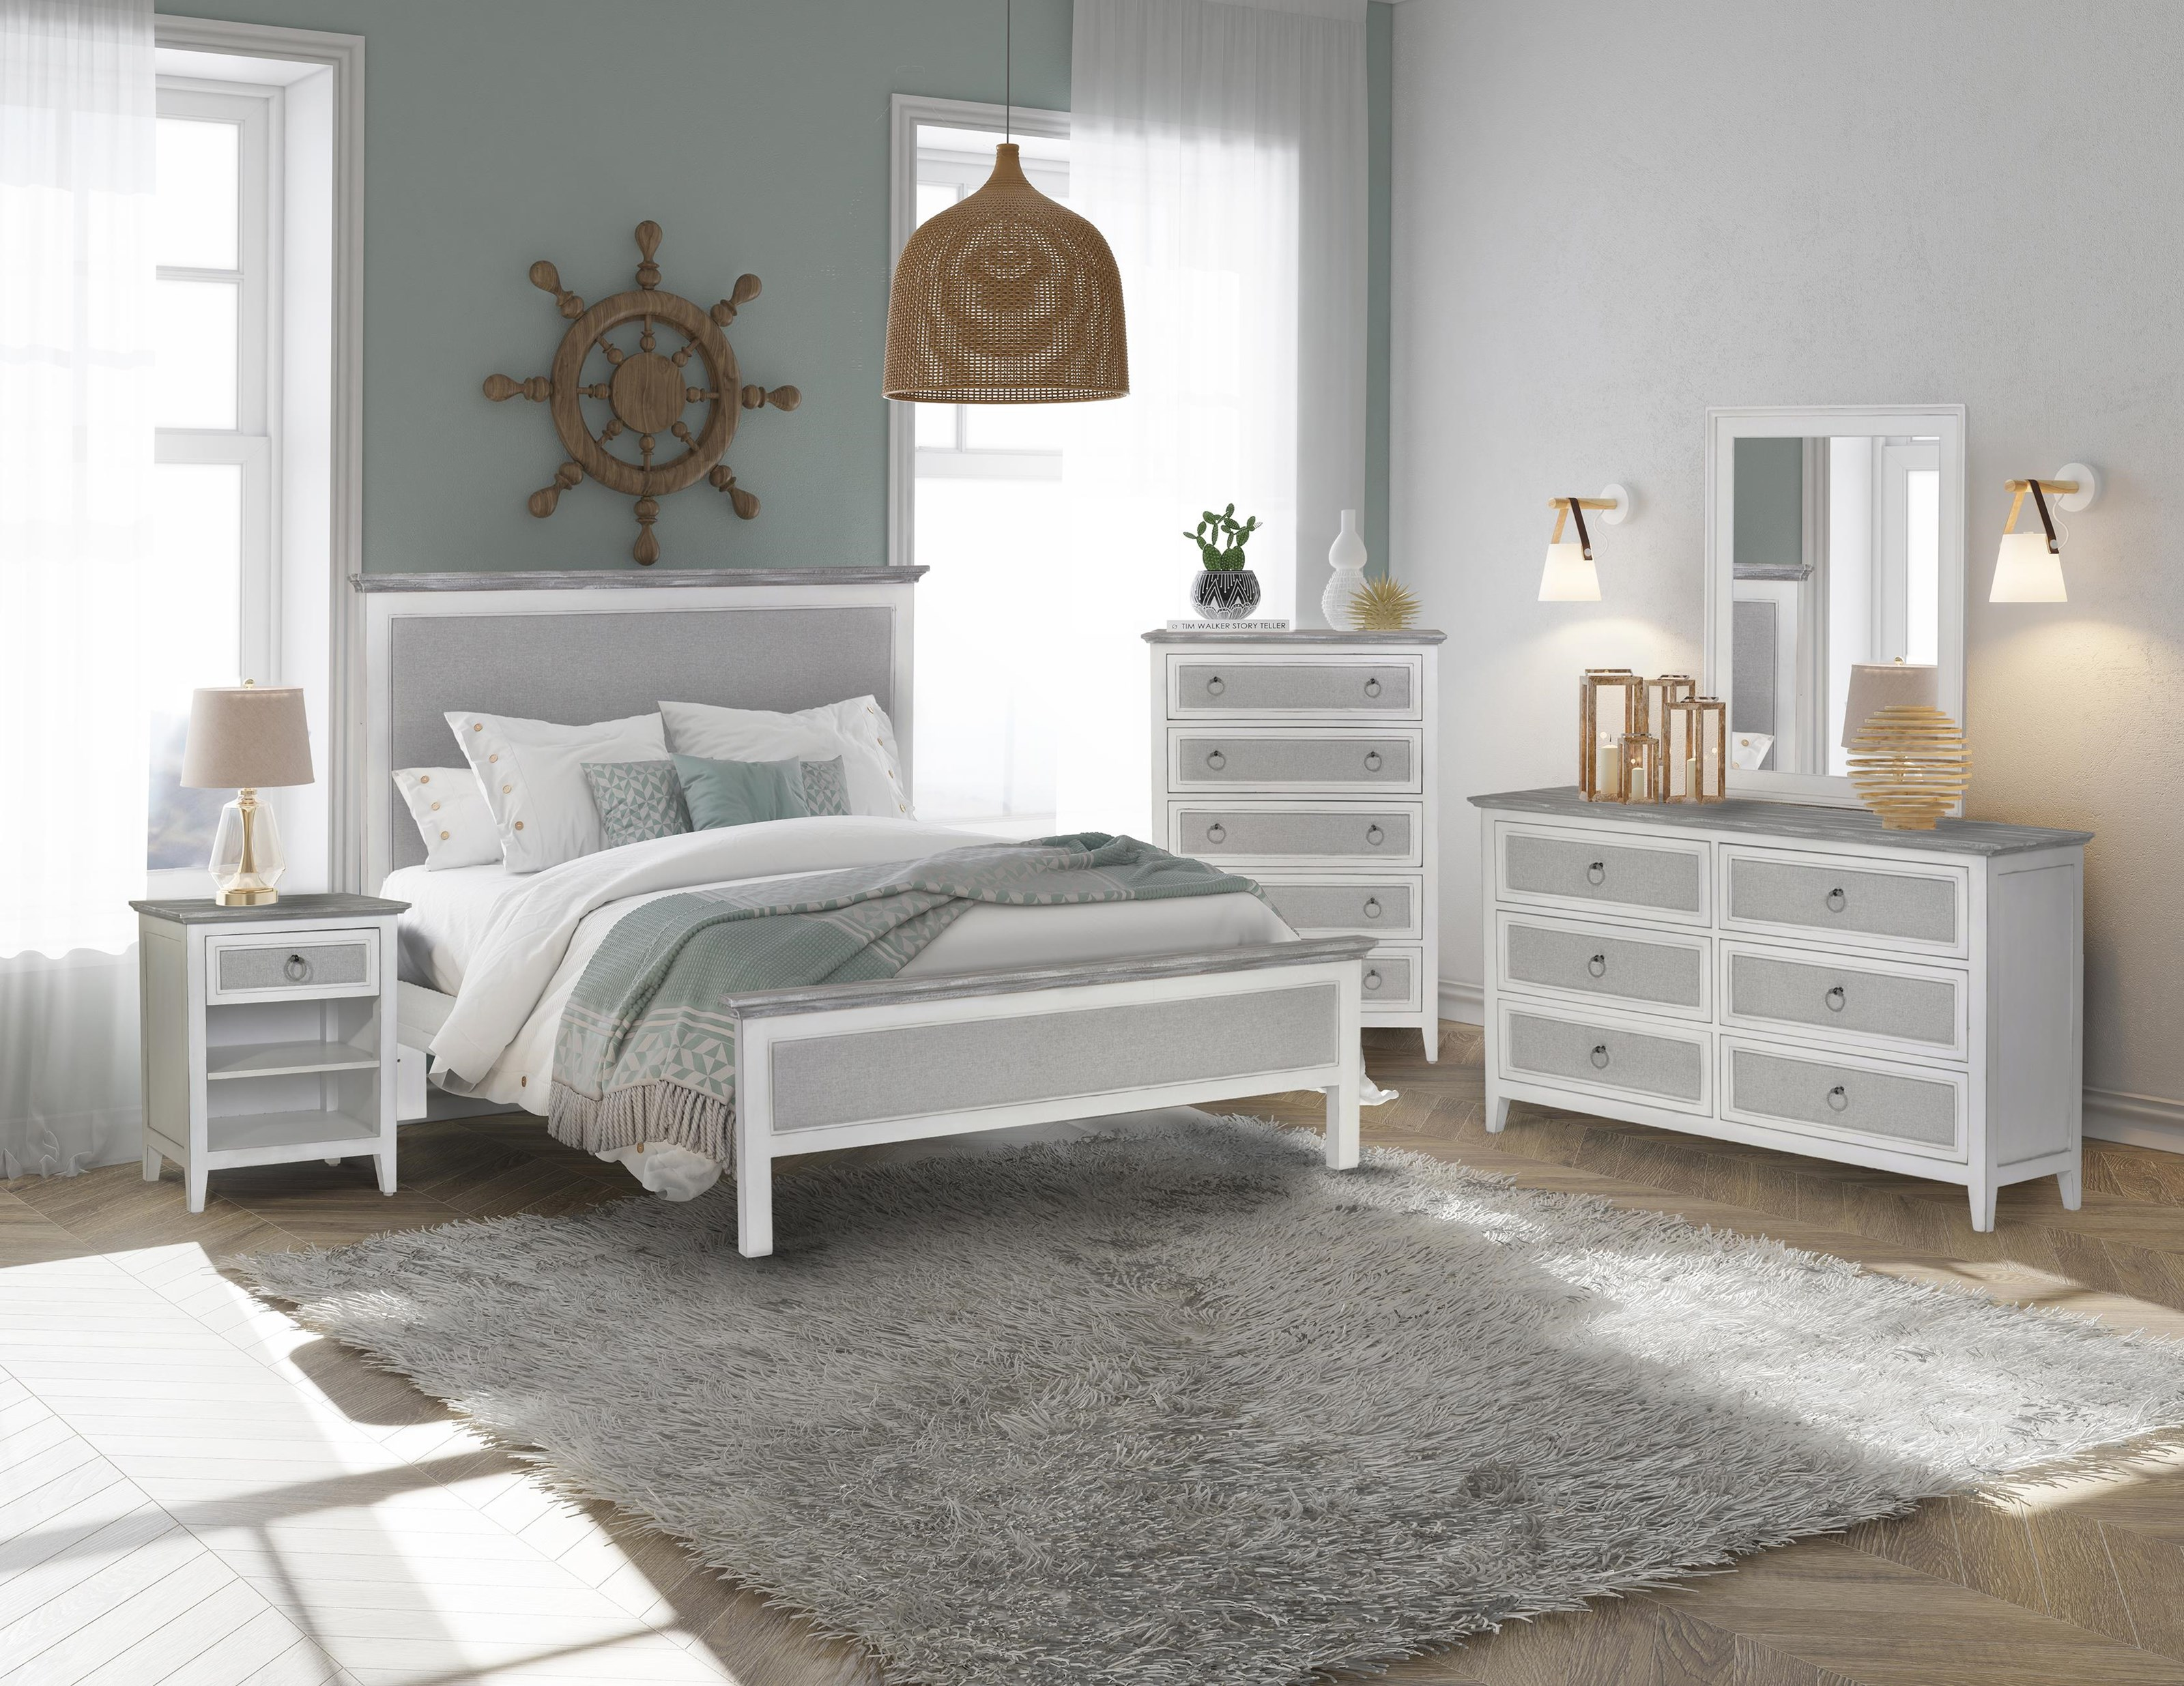 Captiva Island Queen bedroom group by Sea Winds Trading Company at Johnny Janosik